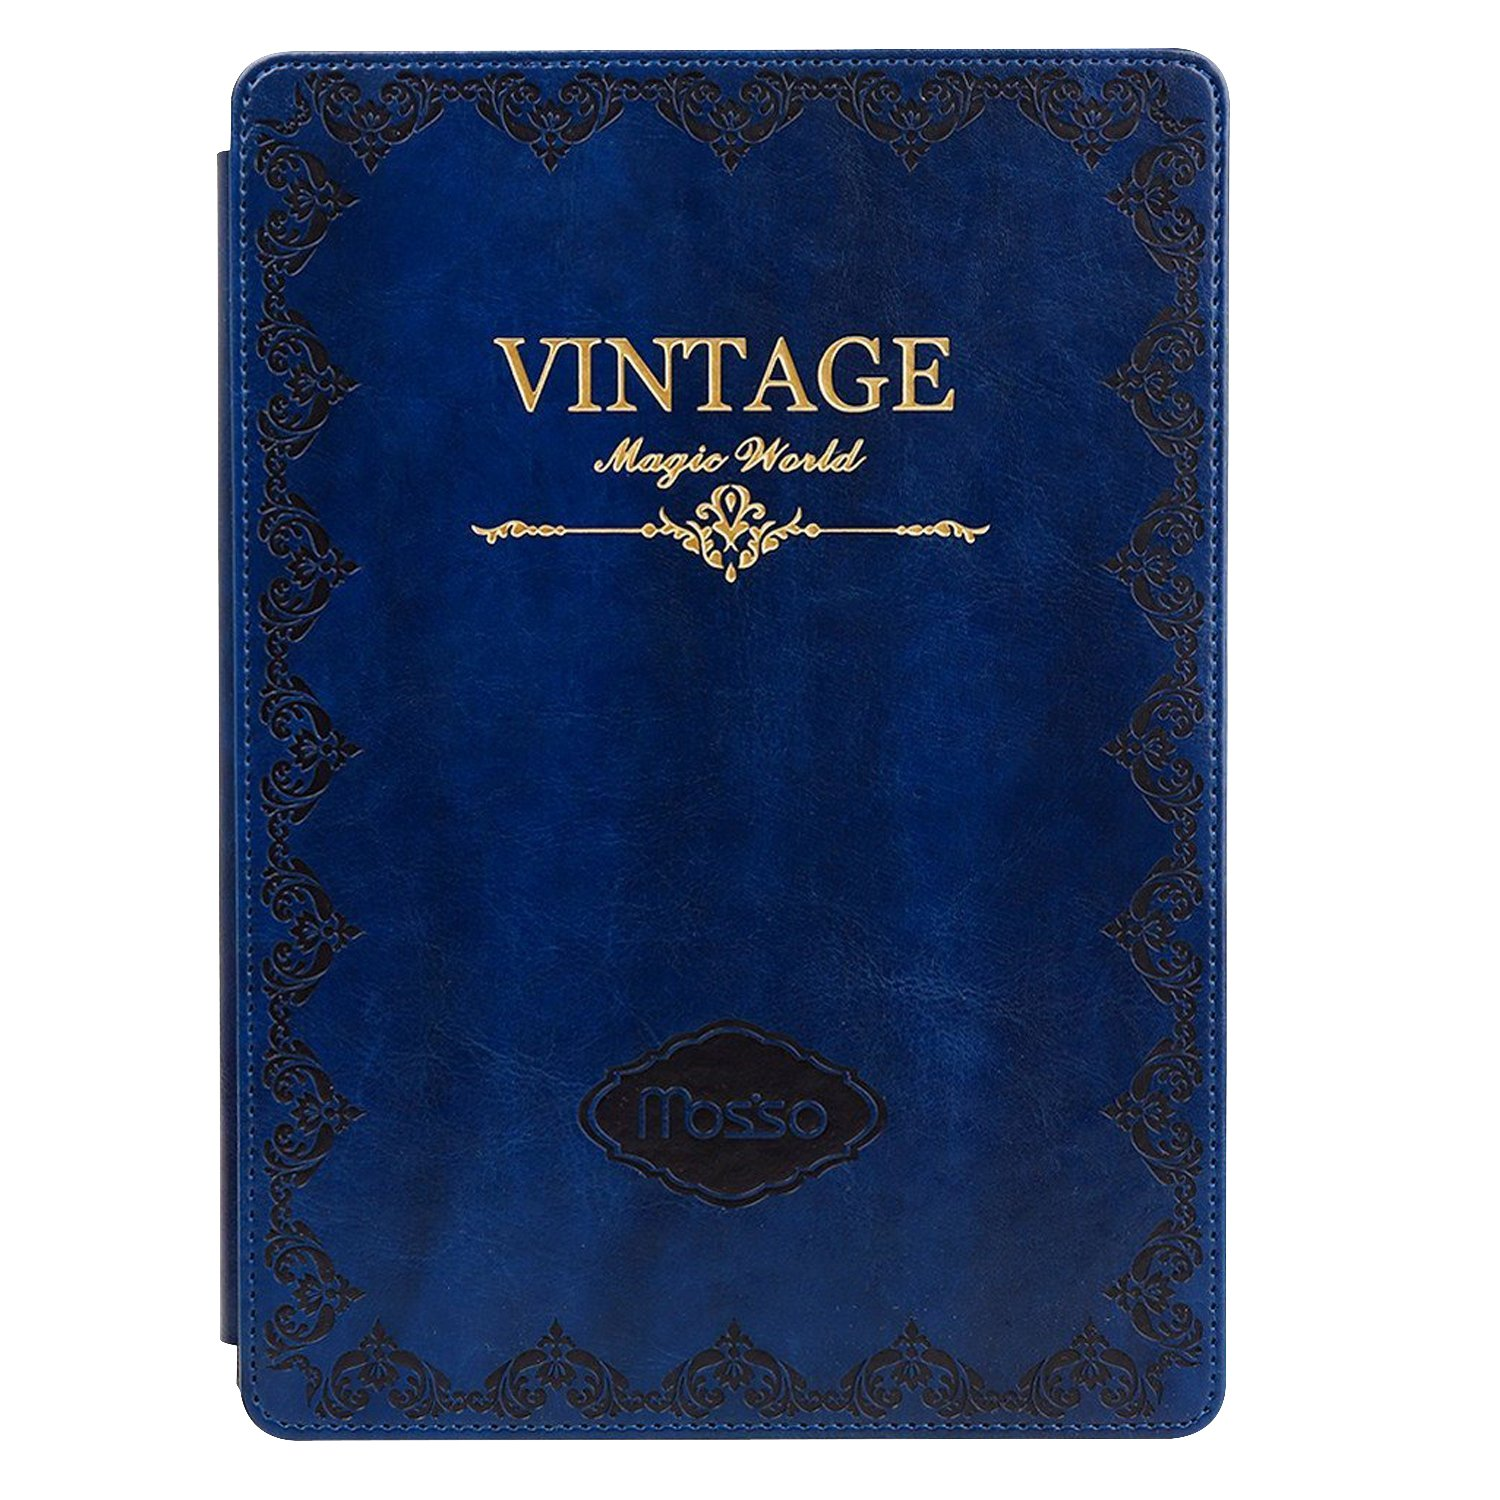 MOSISO Case for iPad Mini 4, Vintage Classic Retro Book Style Smart Cover with Multi-viewing Stand Auto Wake/Sleep Functionfor iPad Mini 4(7.9 Inch, 2015 Release), Blue